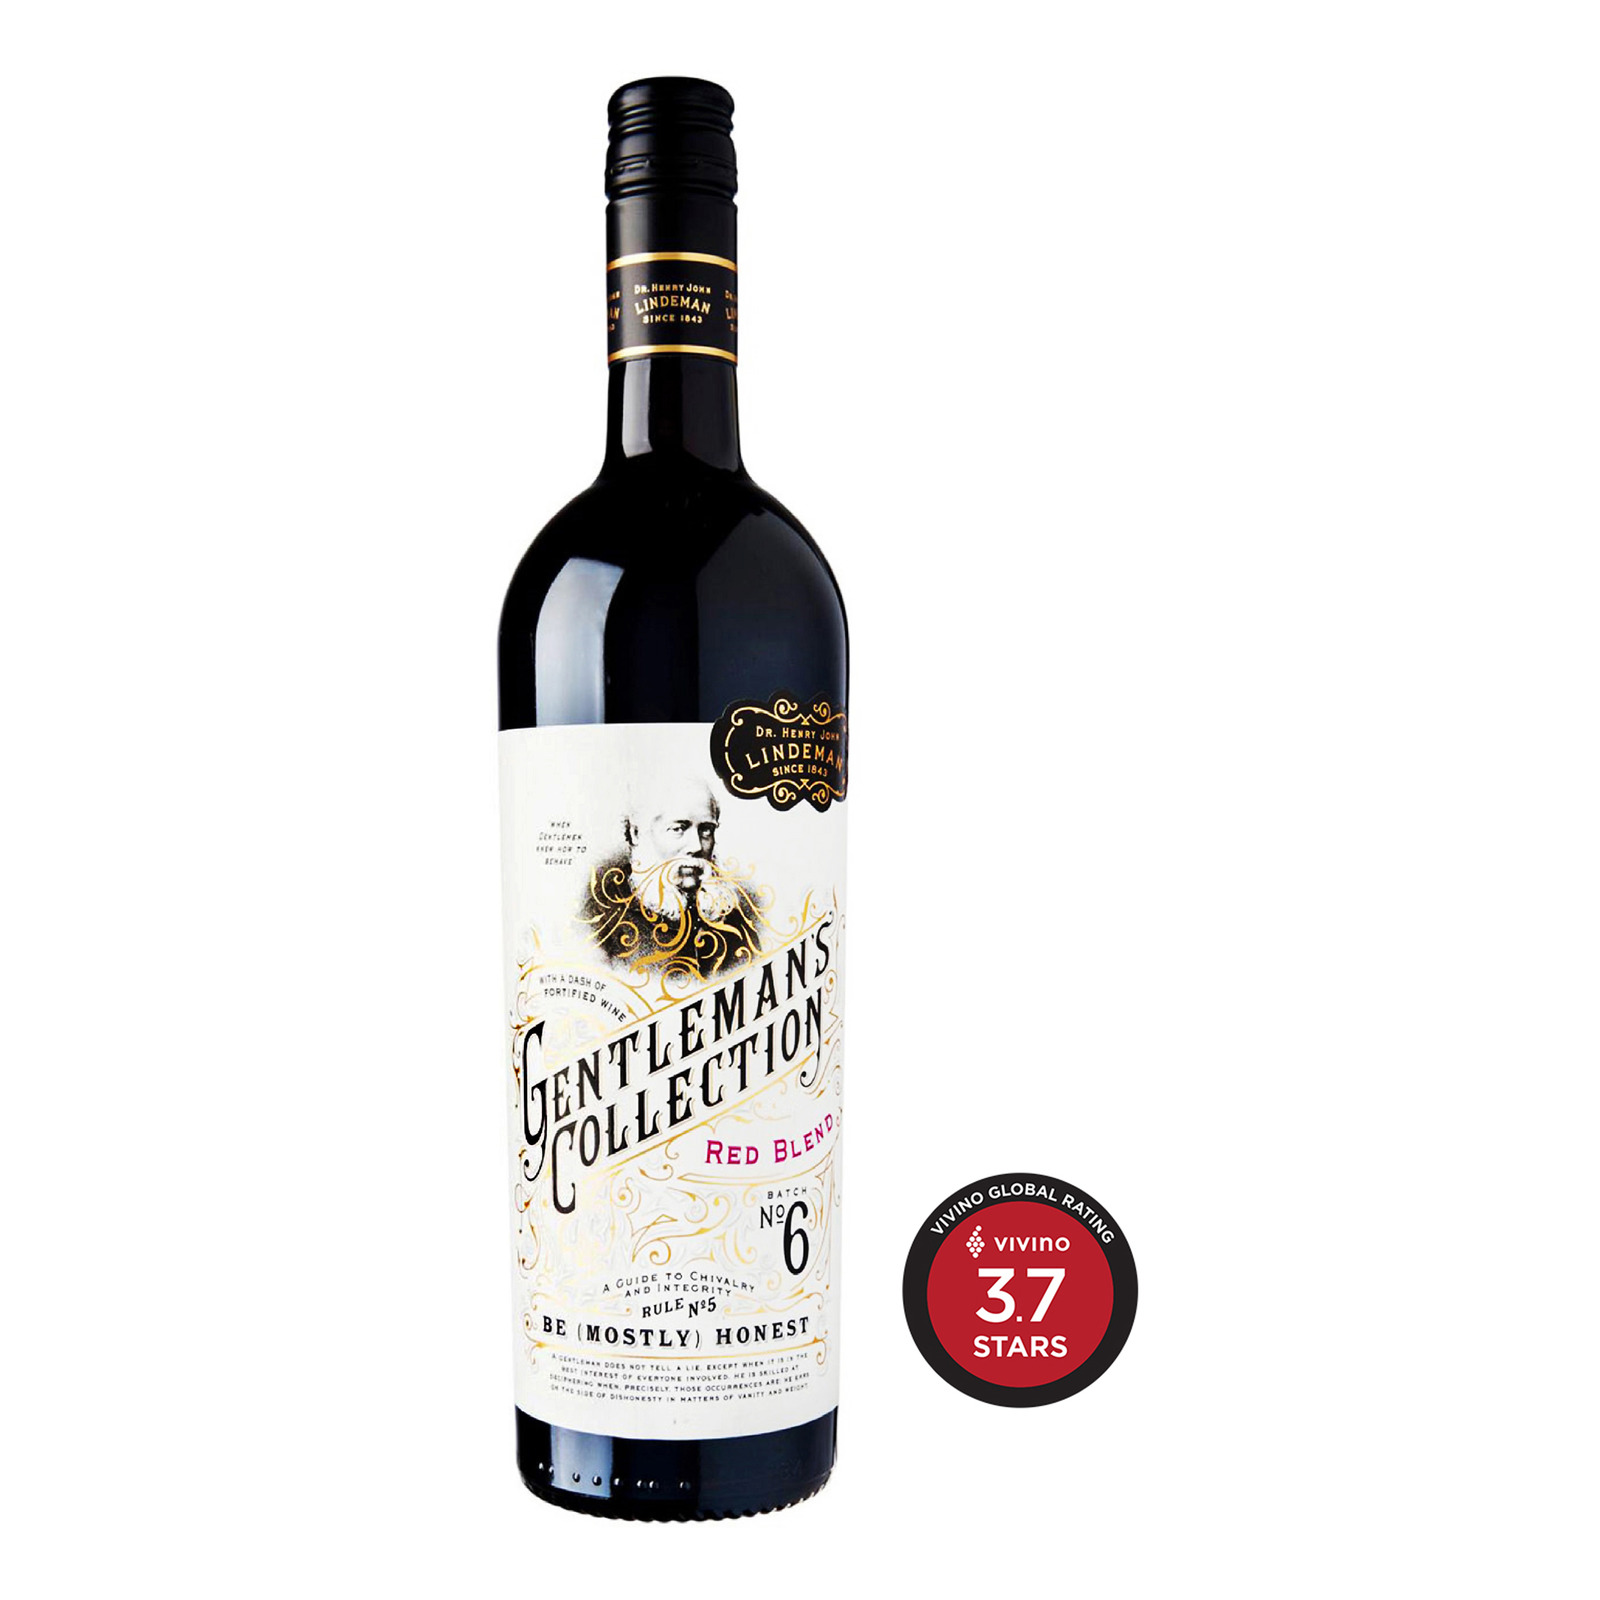 Lindeman Gentleman's Collection Red Wine - Red Blend